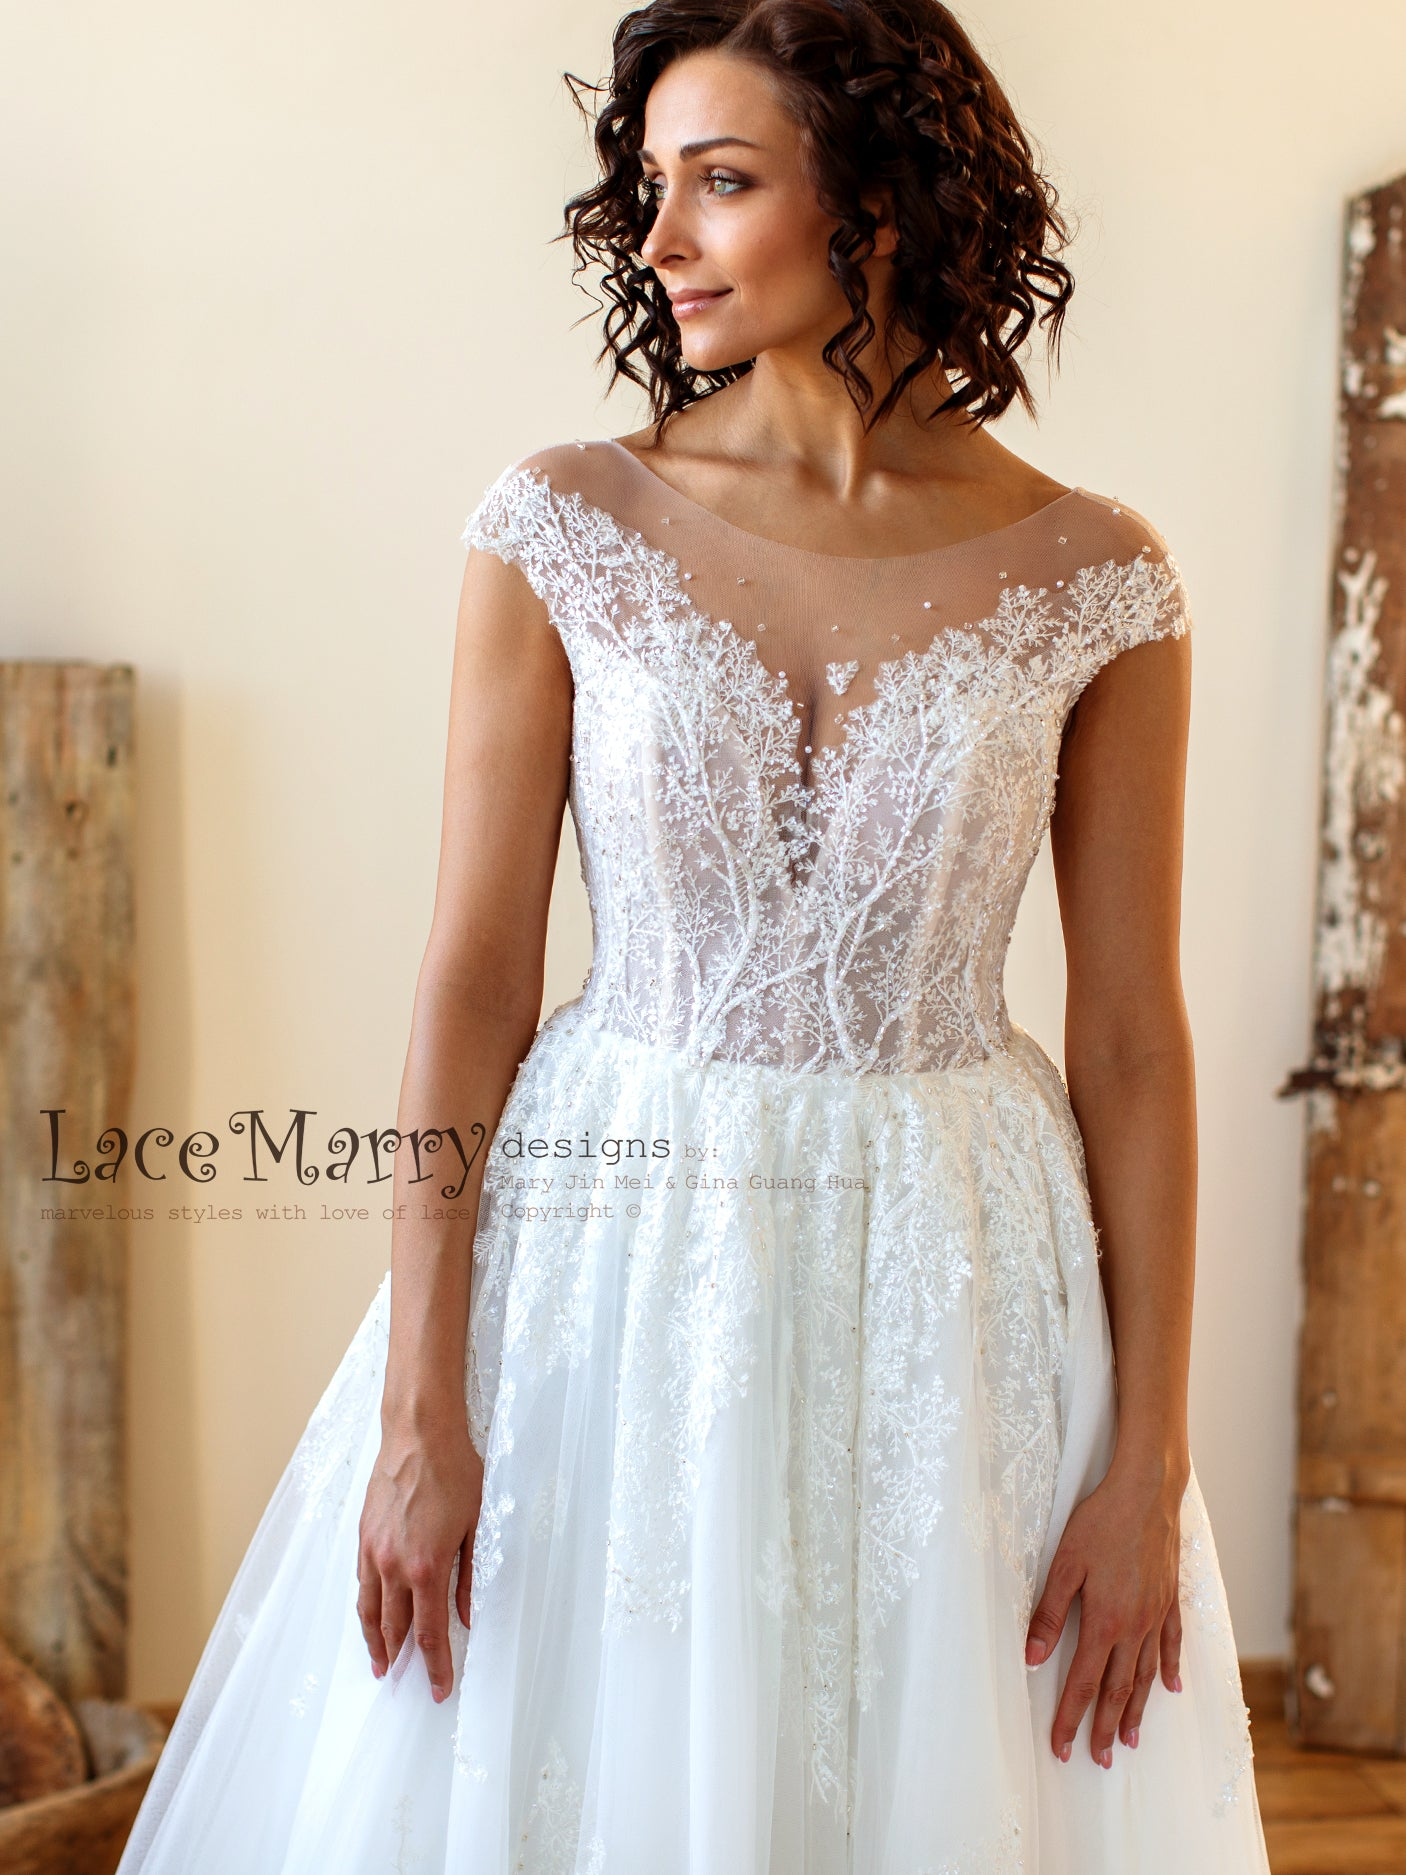 Embroidered Lace Wedding Dress with Illusion Cap Sleeves